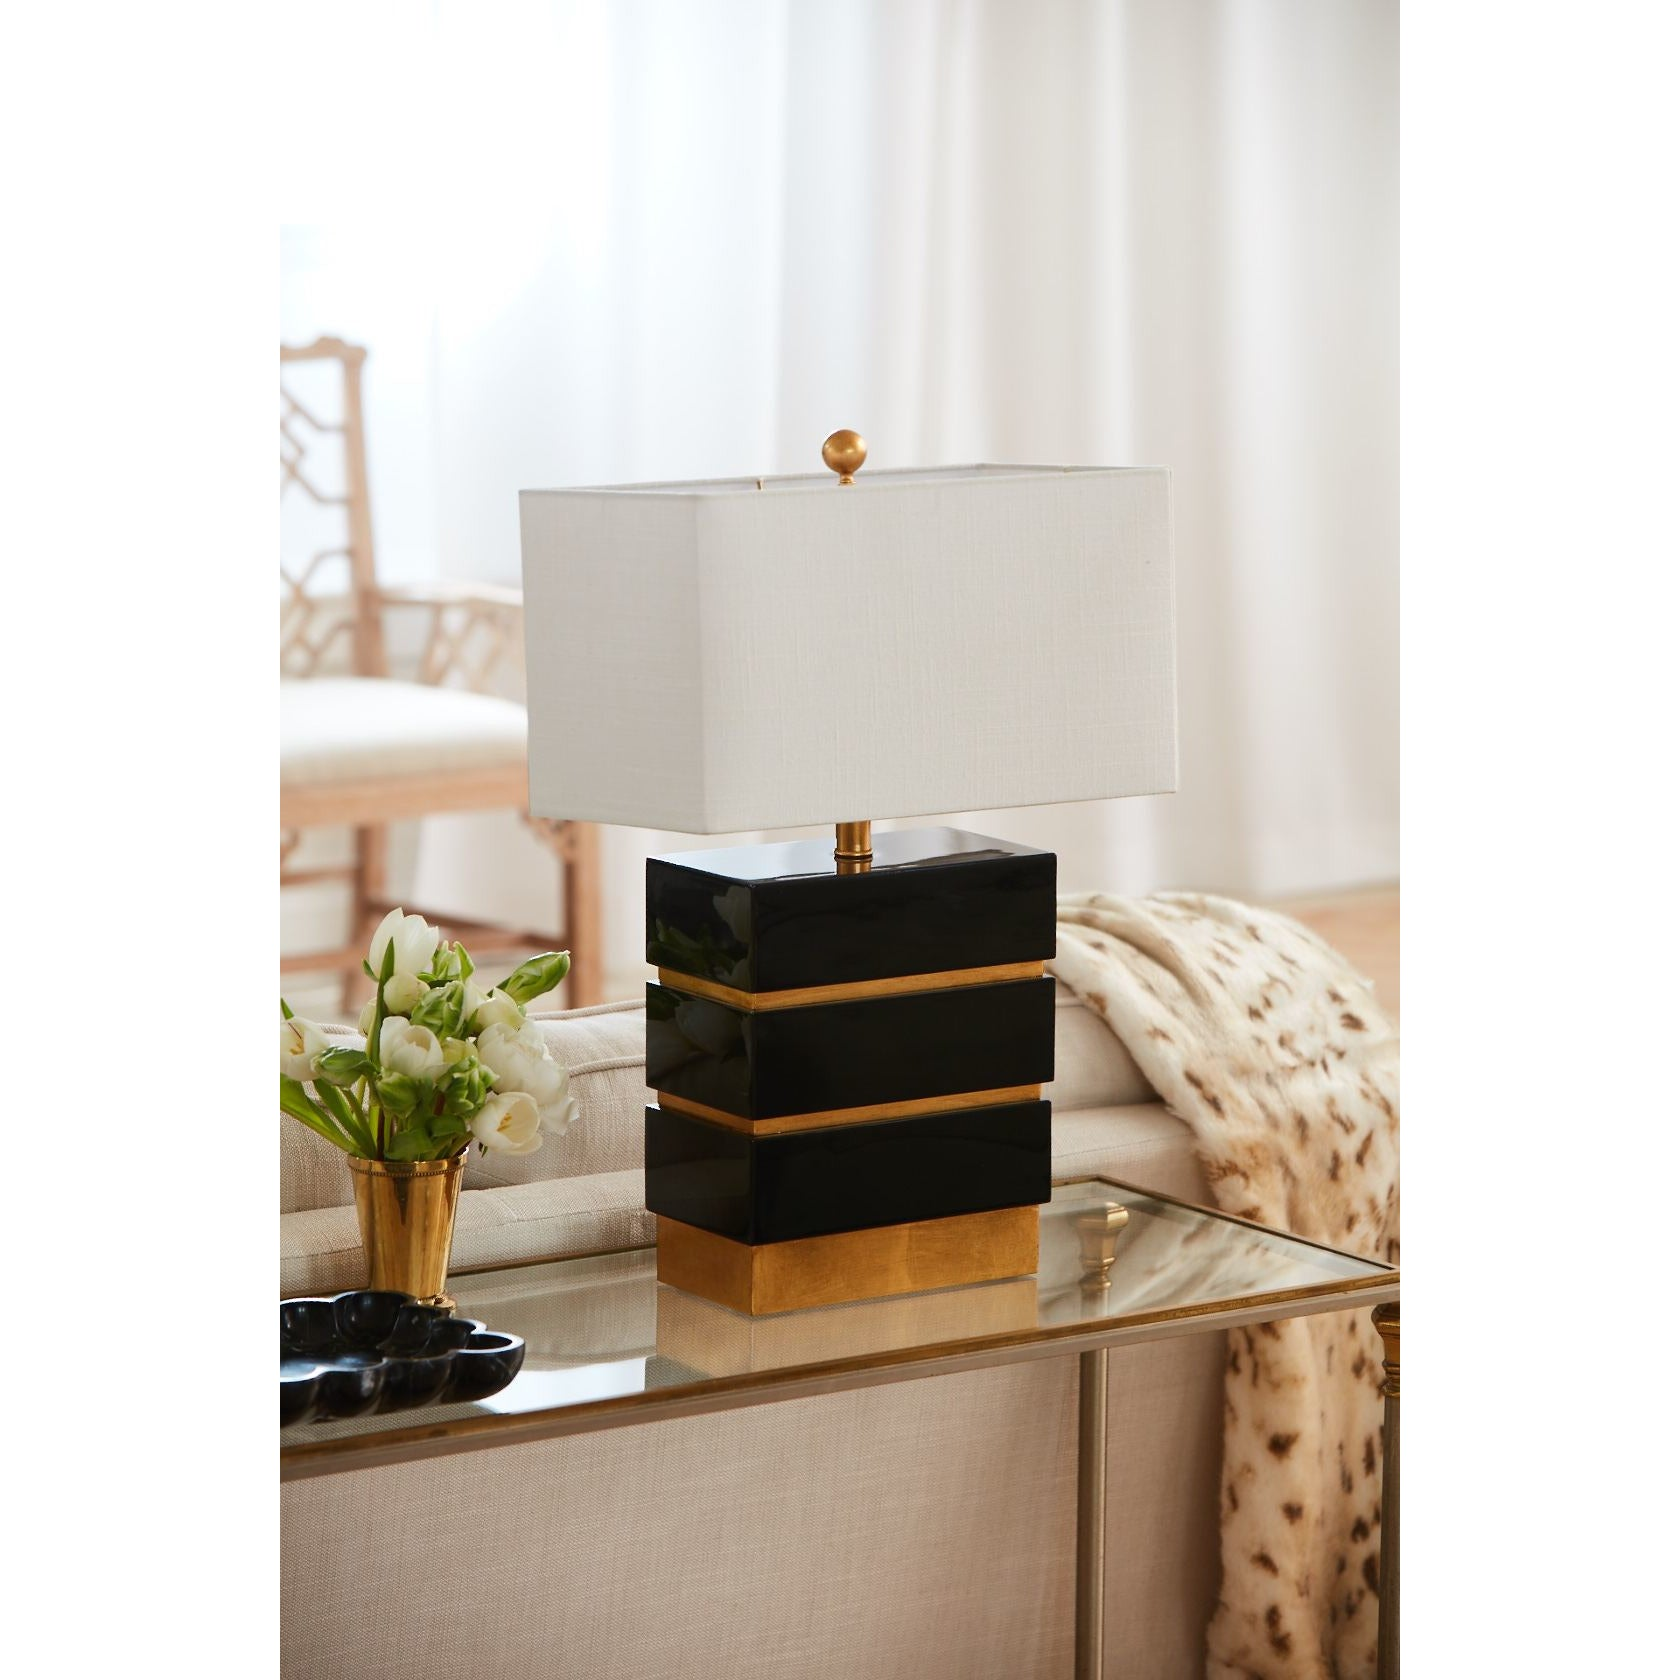 San Simeon Table Lamp, Black - Couture Lamps